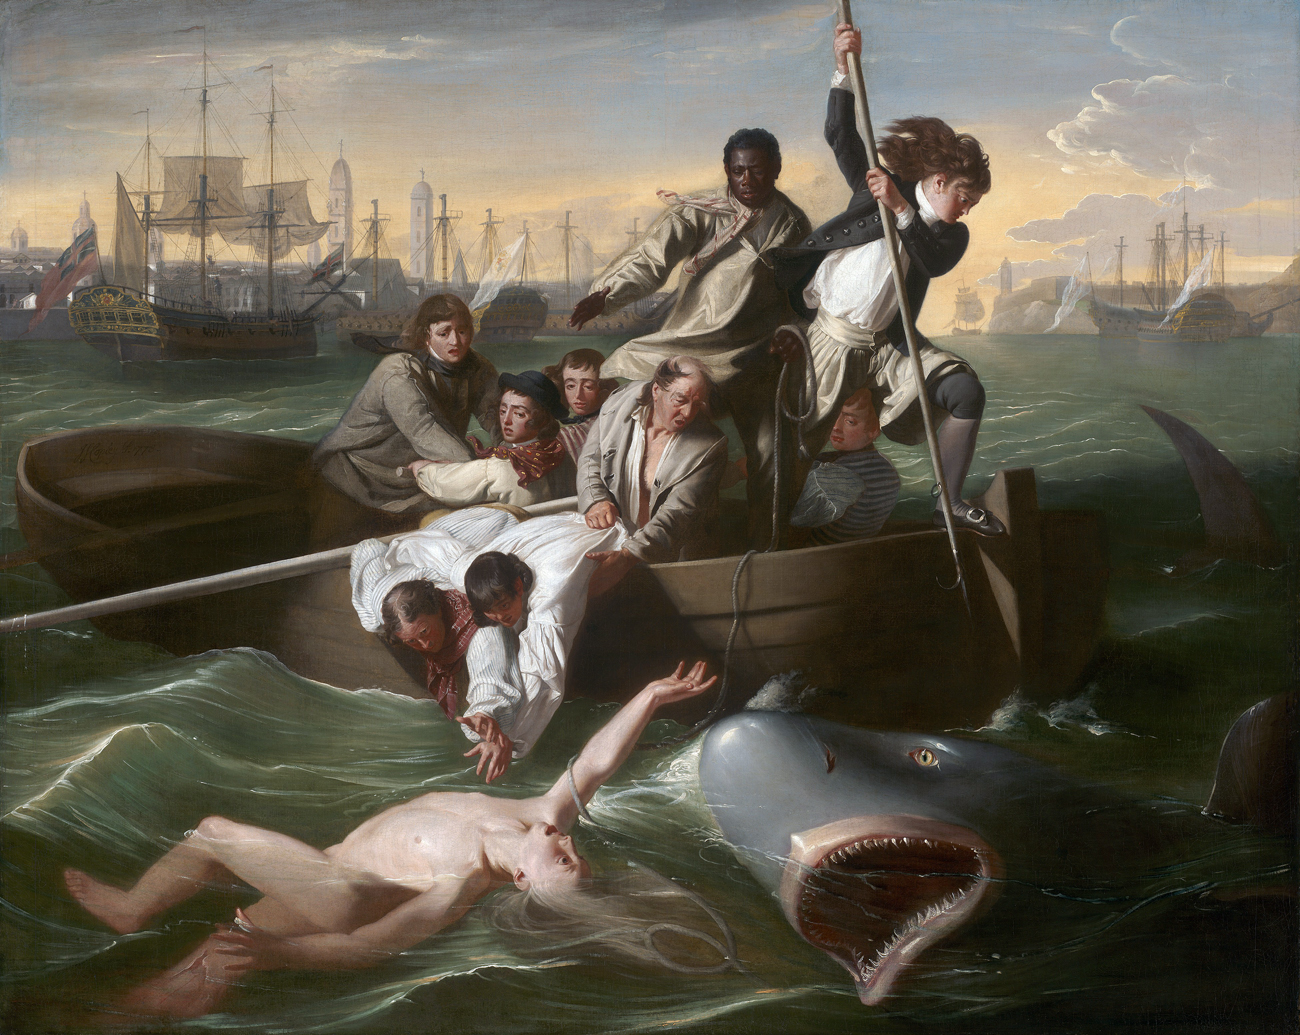 Watson and the Shark, by John Singleton Copley, 1778.